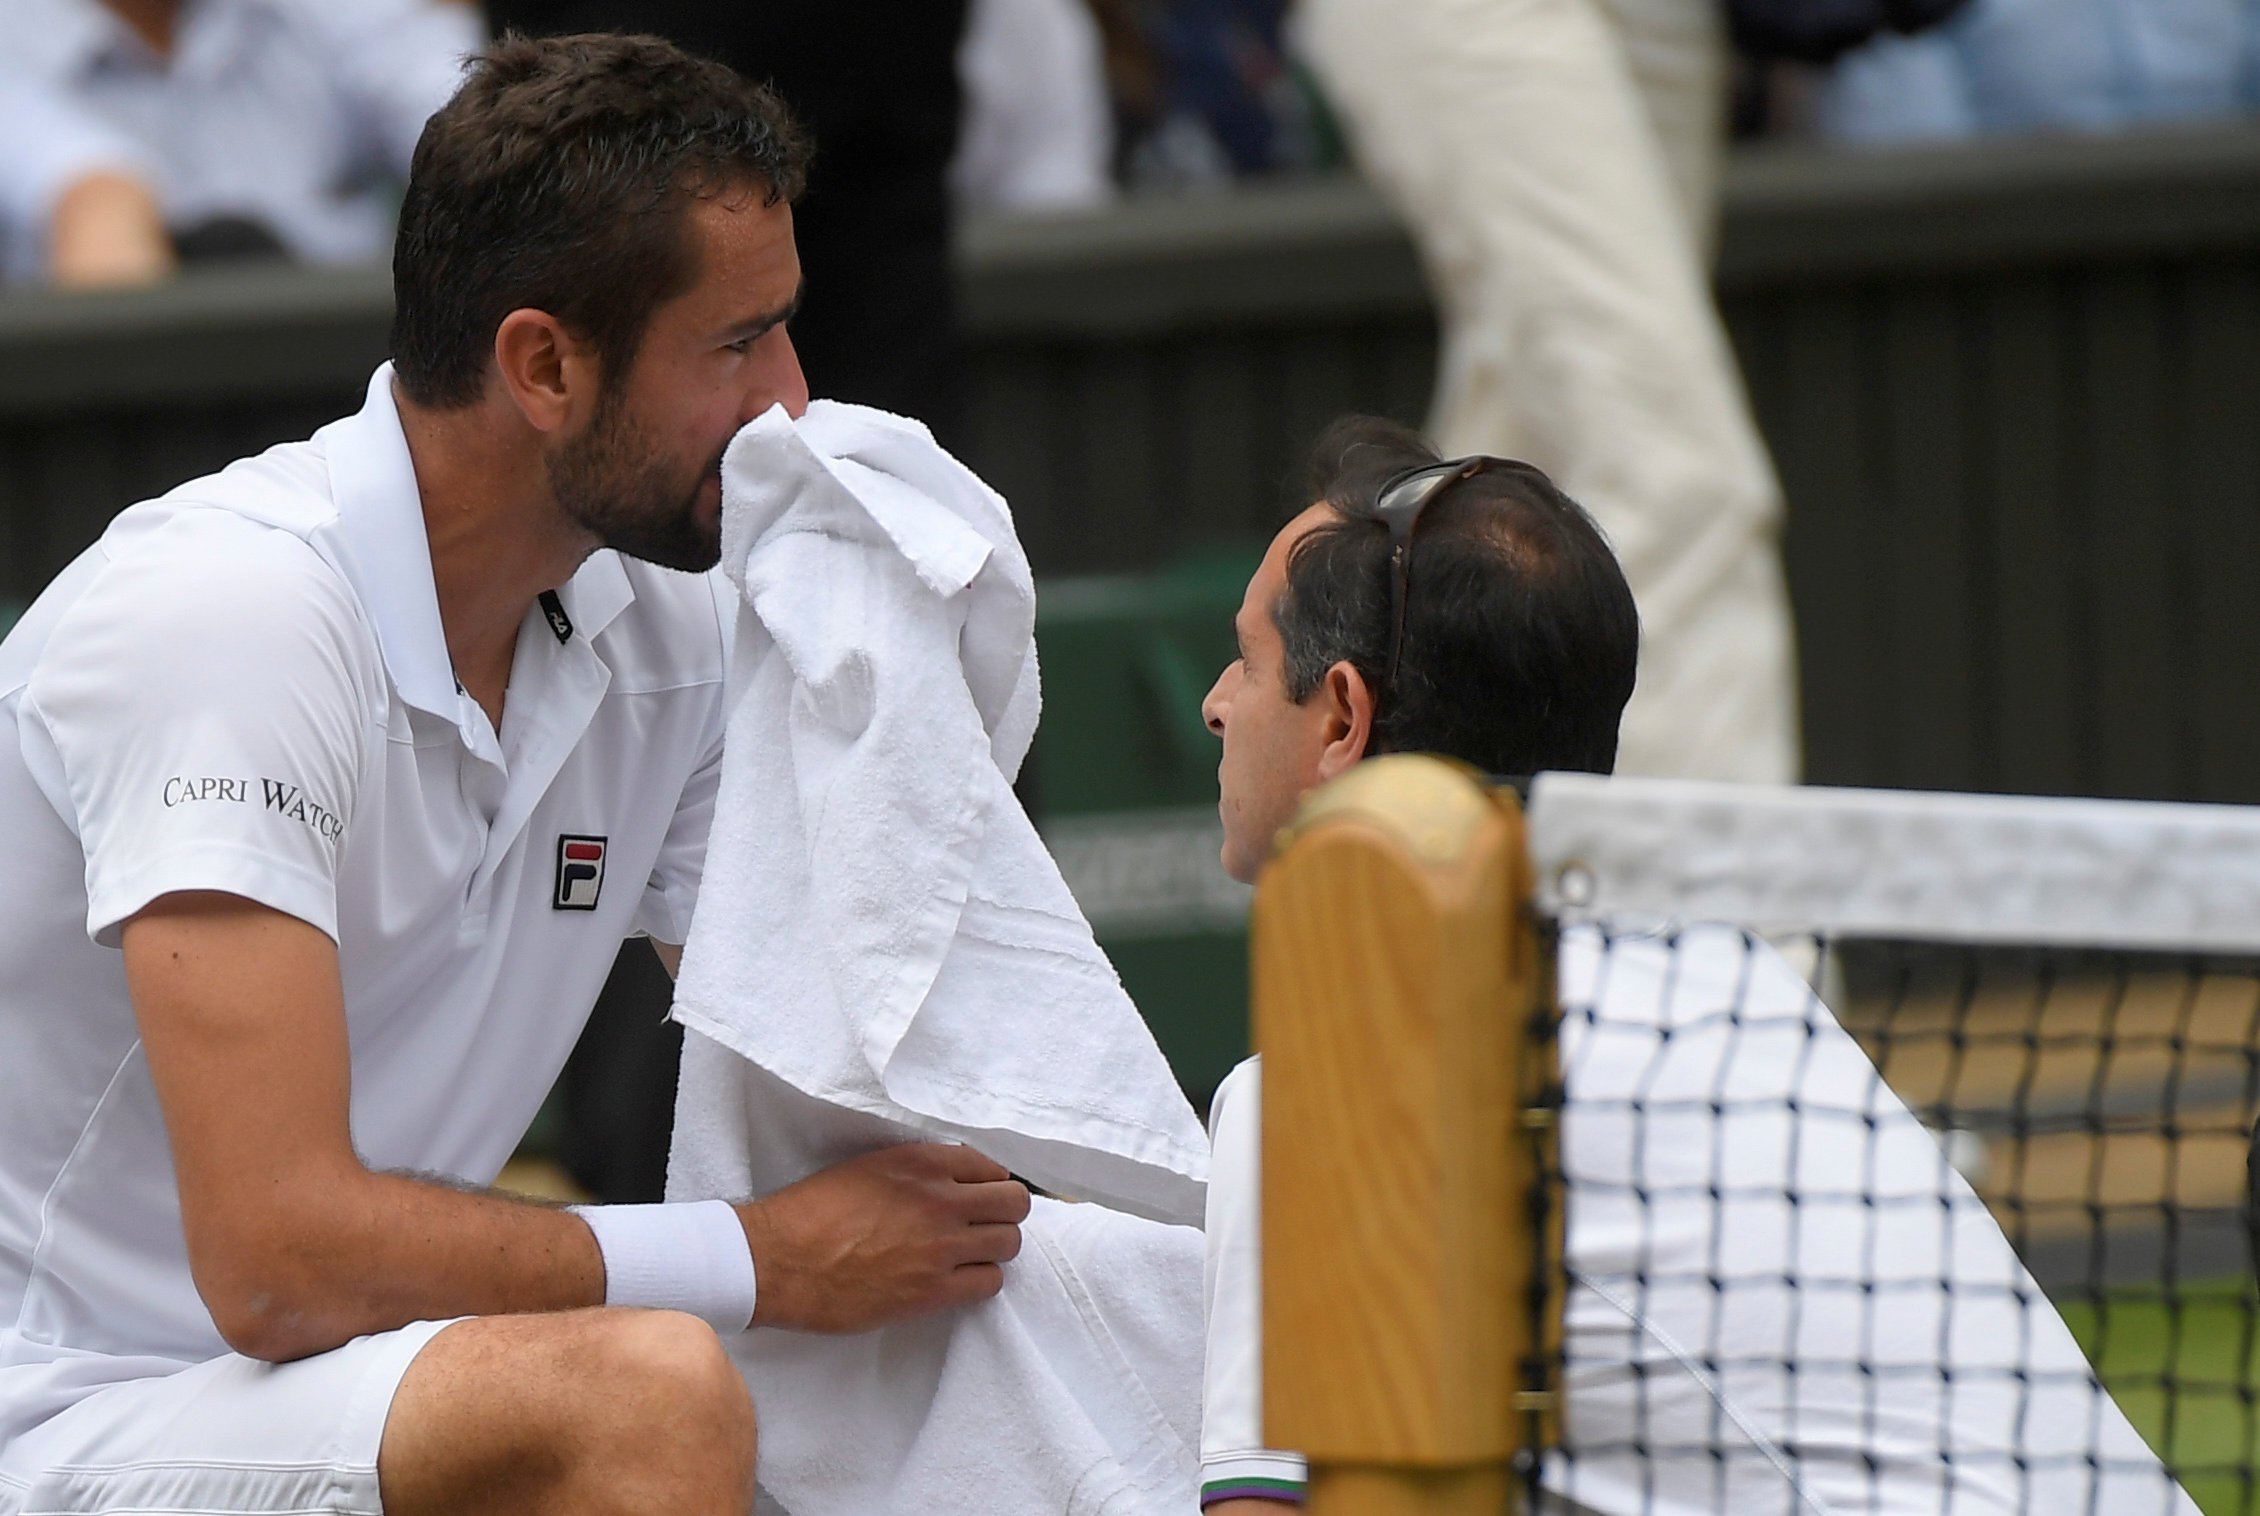 Marin Cilic confident he'll avoid repeat of Wimbledon tears v Roger Federer in Australian Open final